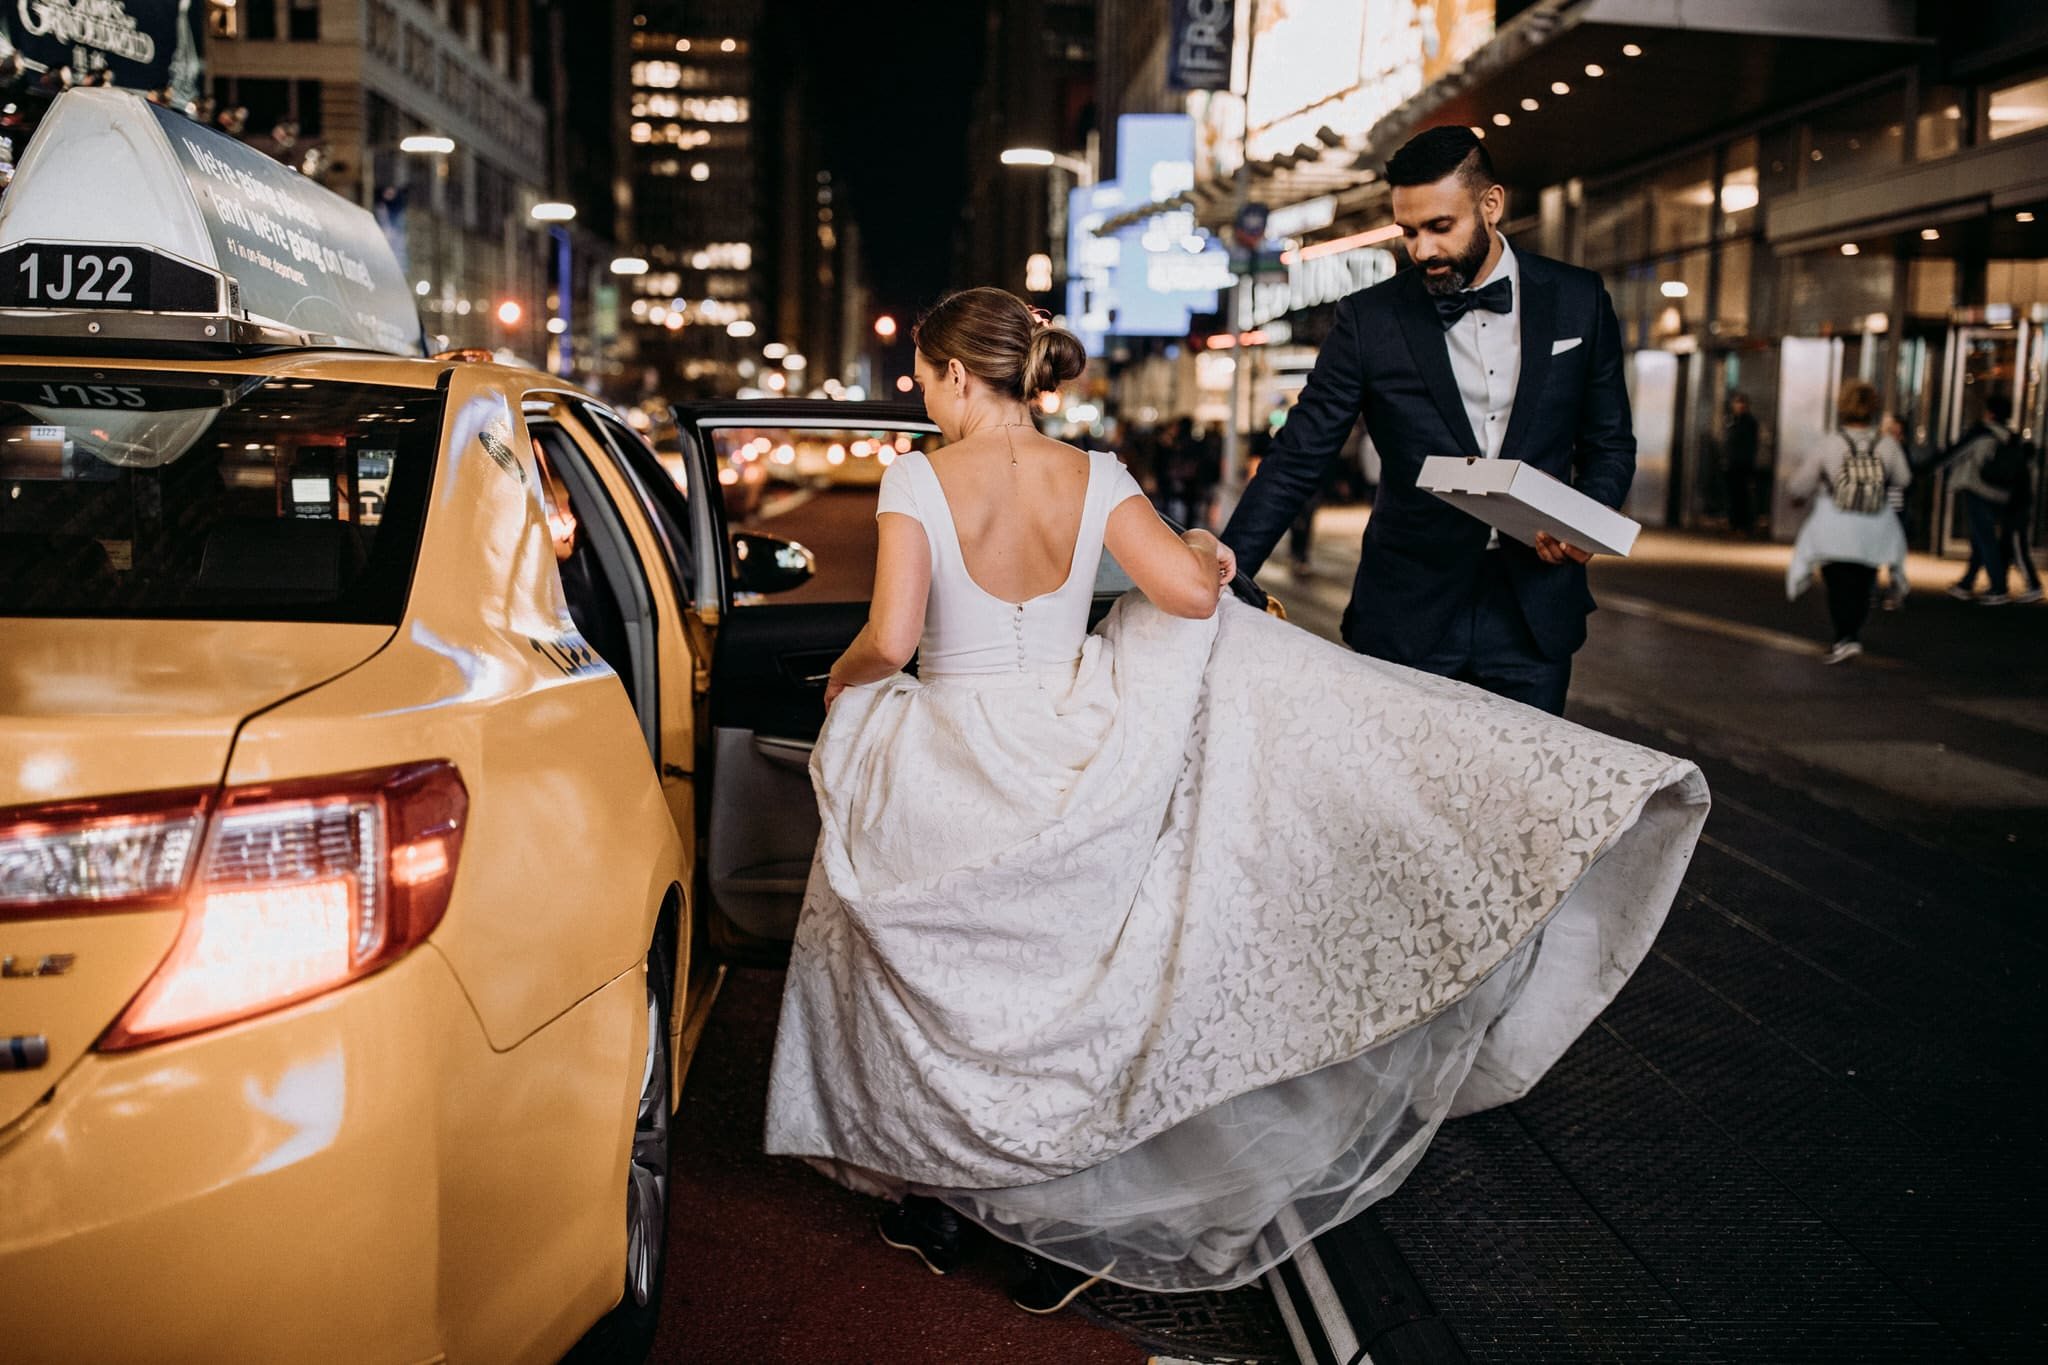 The bride and groom catch a taxi at Times Square in New York City. Wedding Photographer Brent Calis.